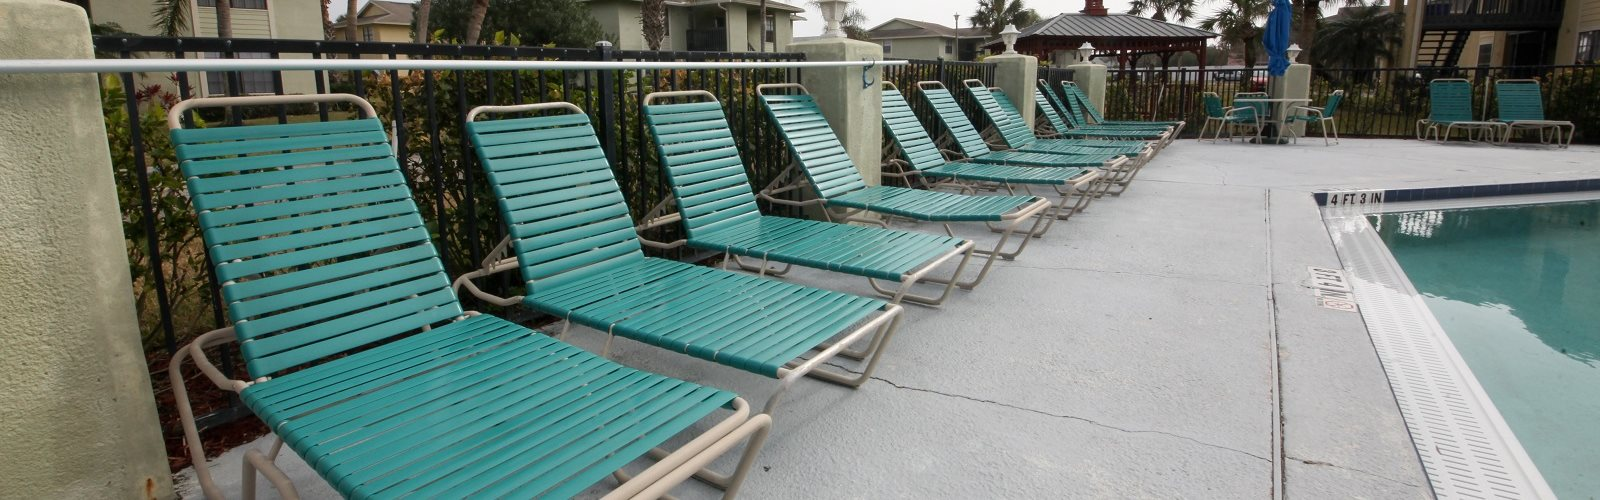 poolside Lounge Chairs at Seaside Villas Apartments, St Augustine, FL